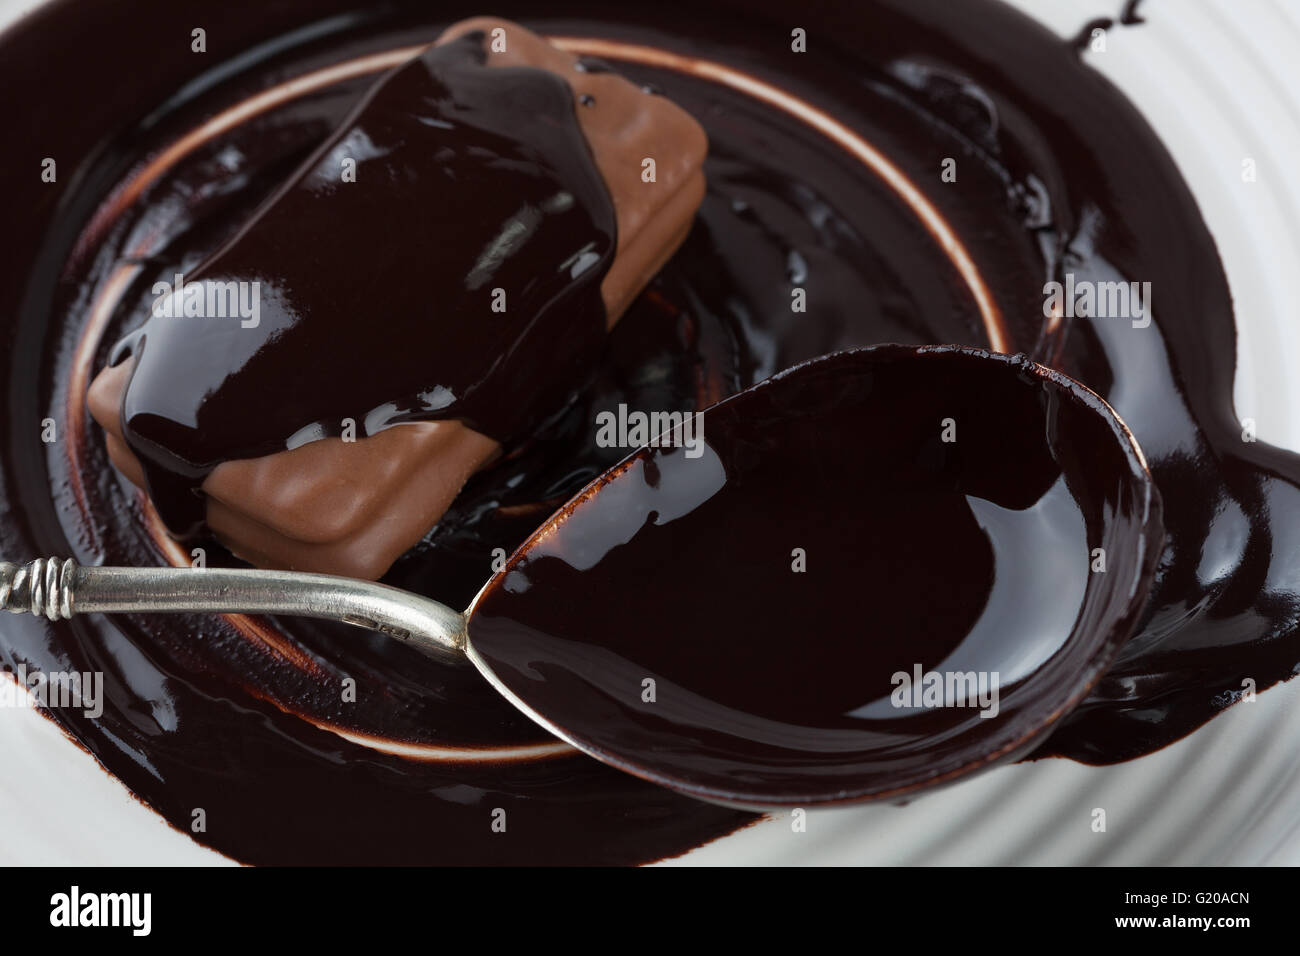 Closeup of cookie and silver spoon covered in dark melted chocolate on white plate - Stock Image